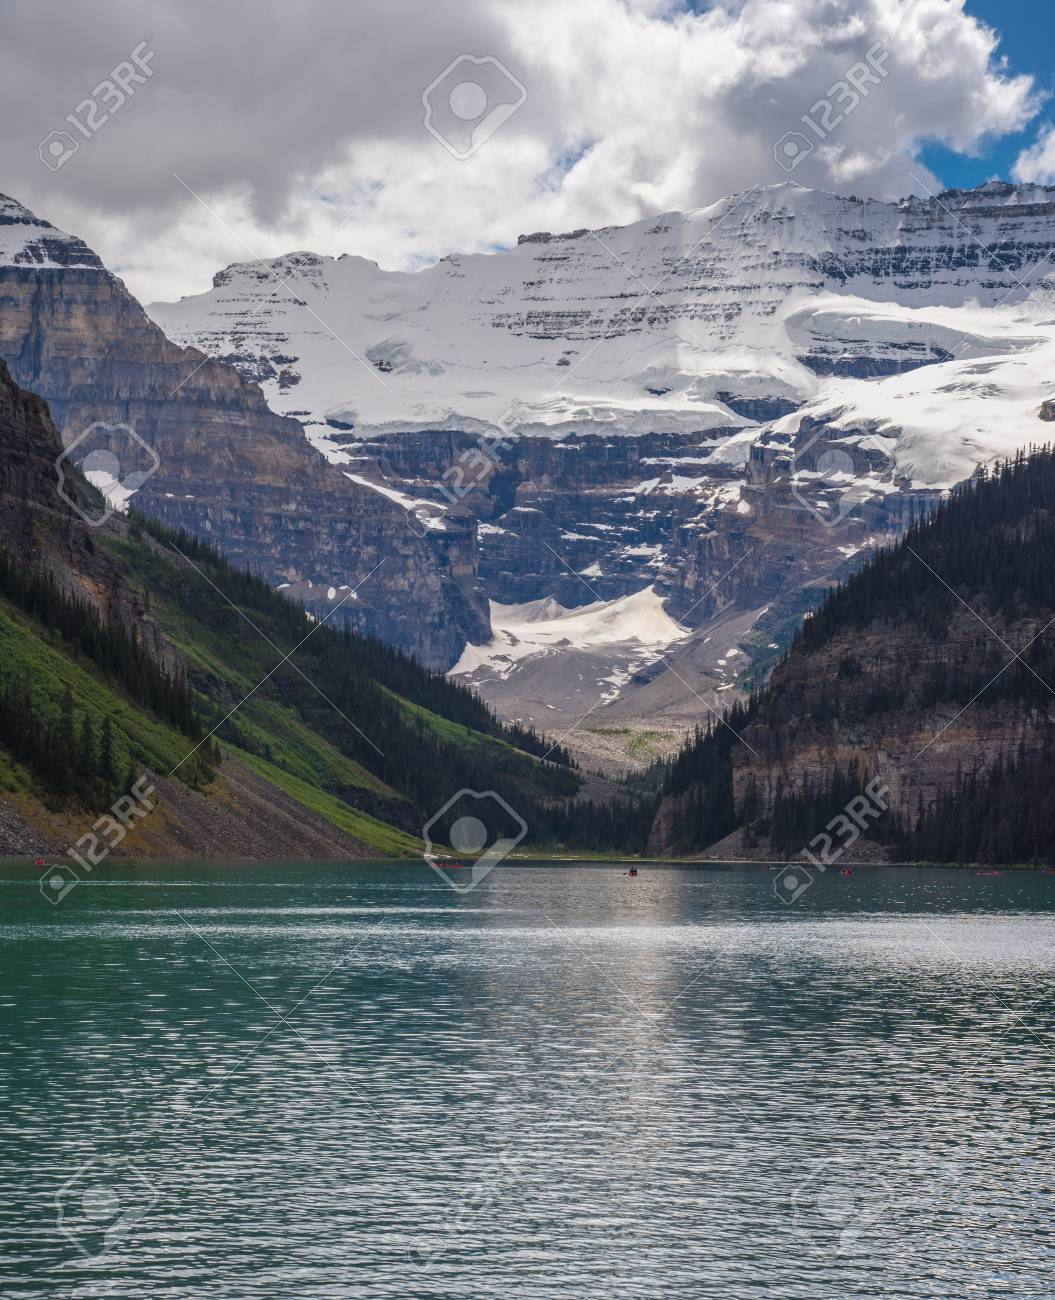 Lake Louise with mountain cover by snow on the background in sunny summer day, Alberta., Canada - 115023899